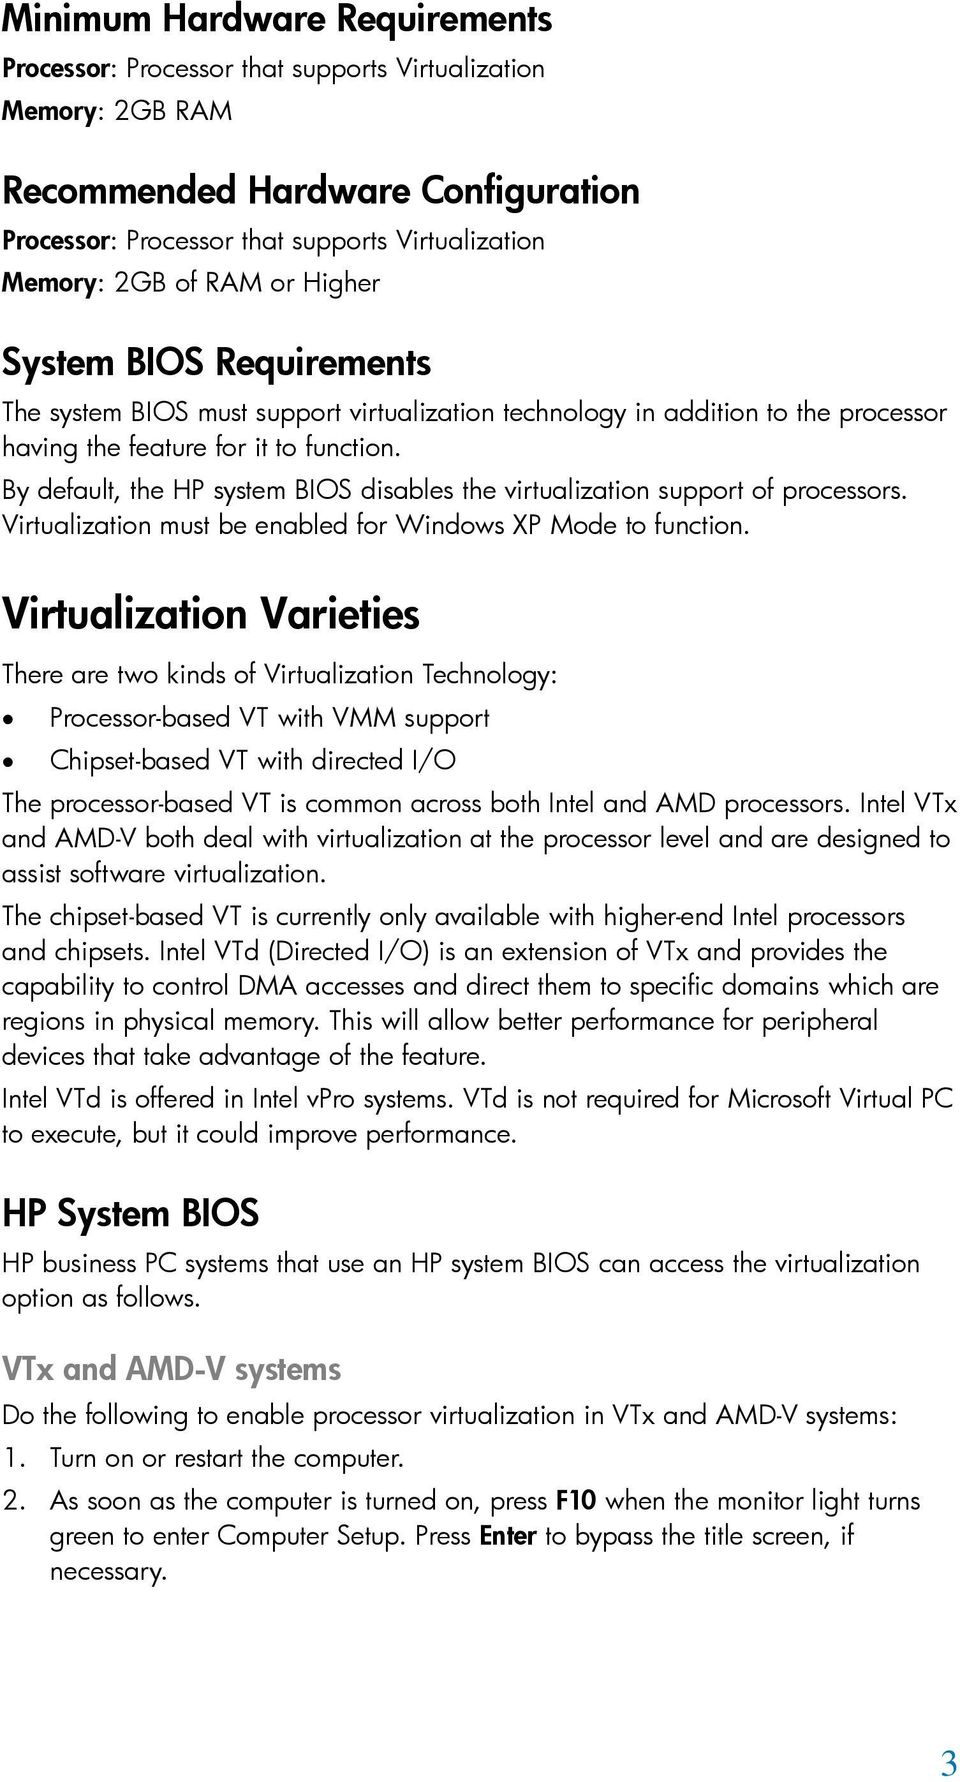 By default, the HP system BIOS disables the virtualization support of processors. Virtualization must be enabled for Windows XP Mode to function.